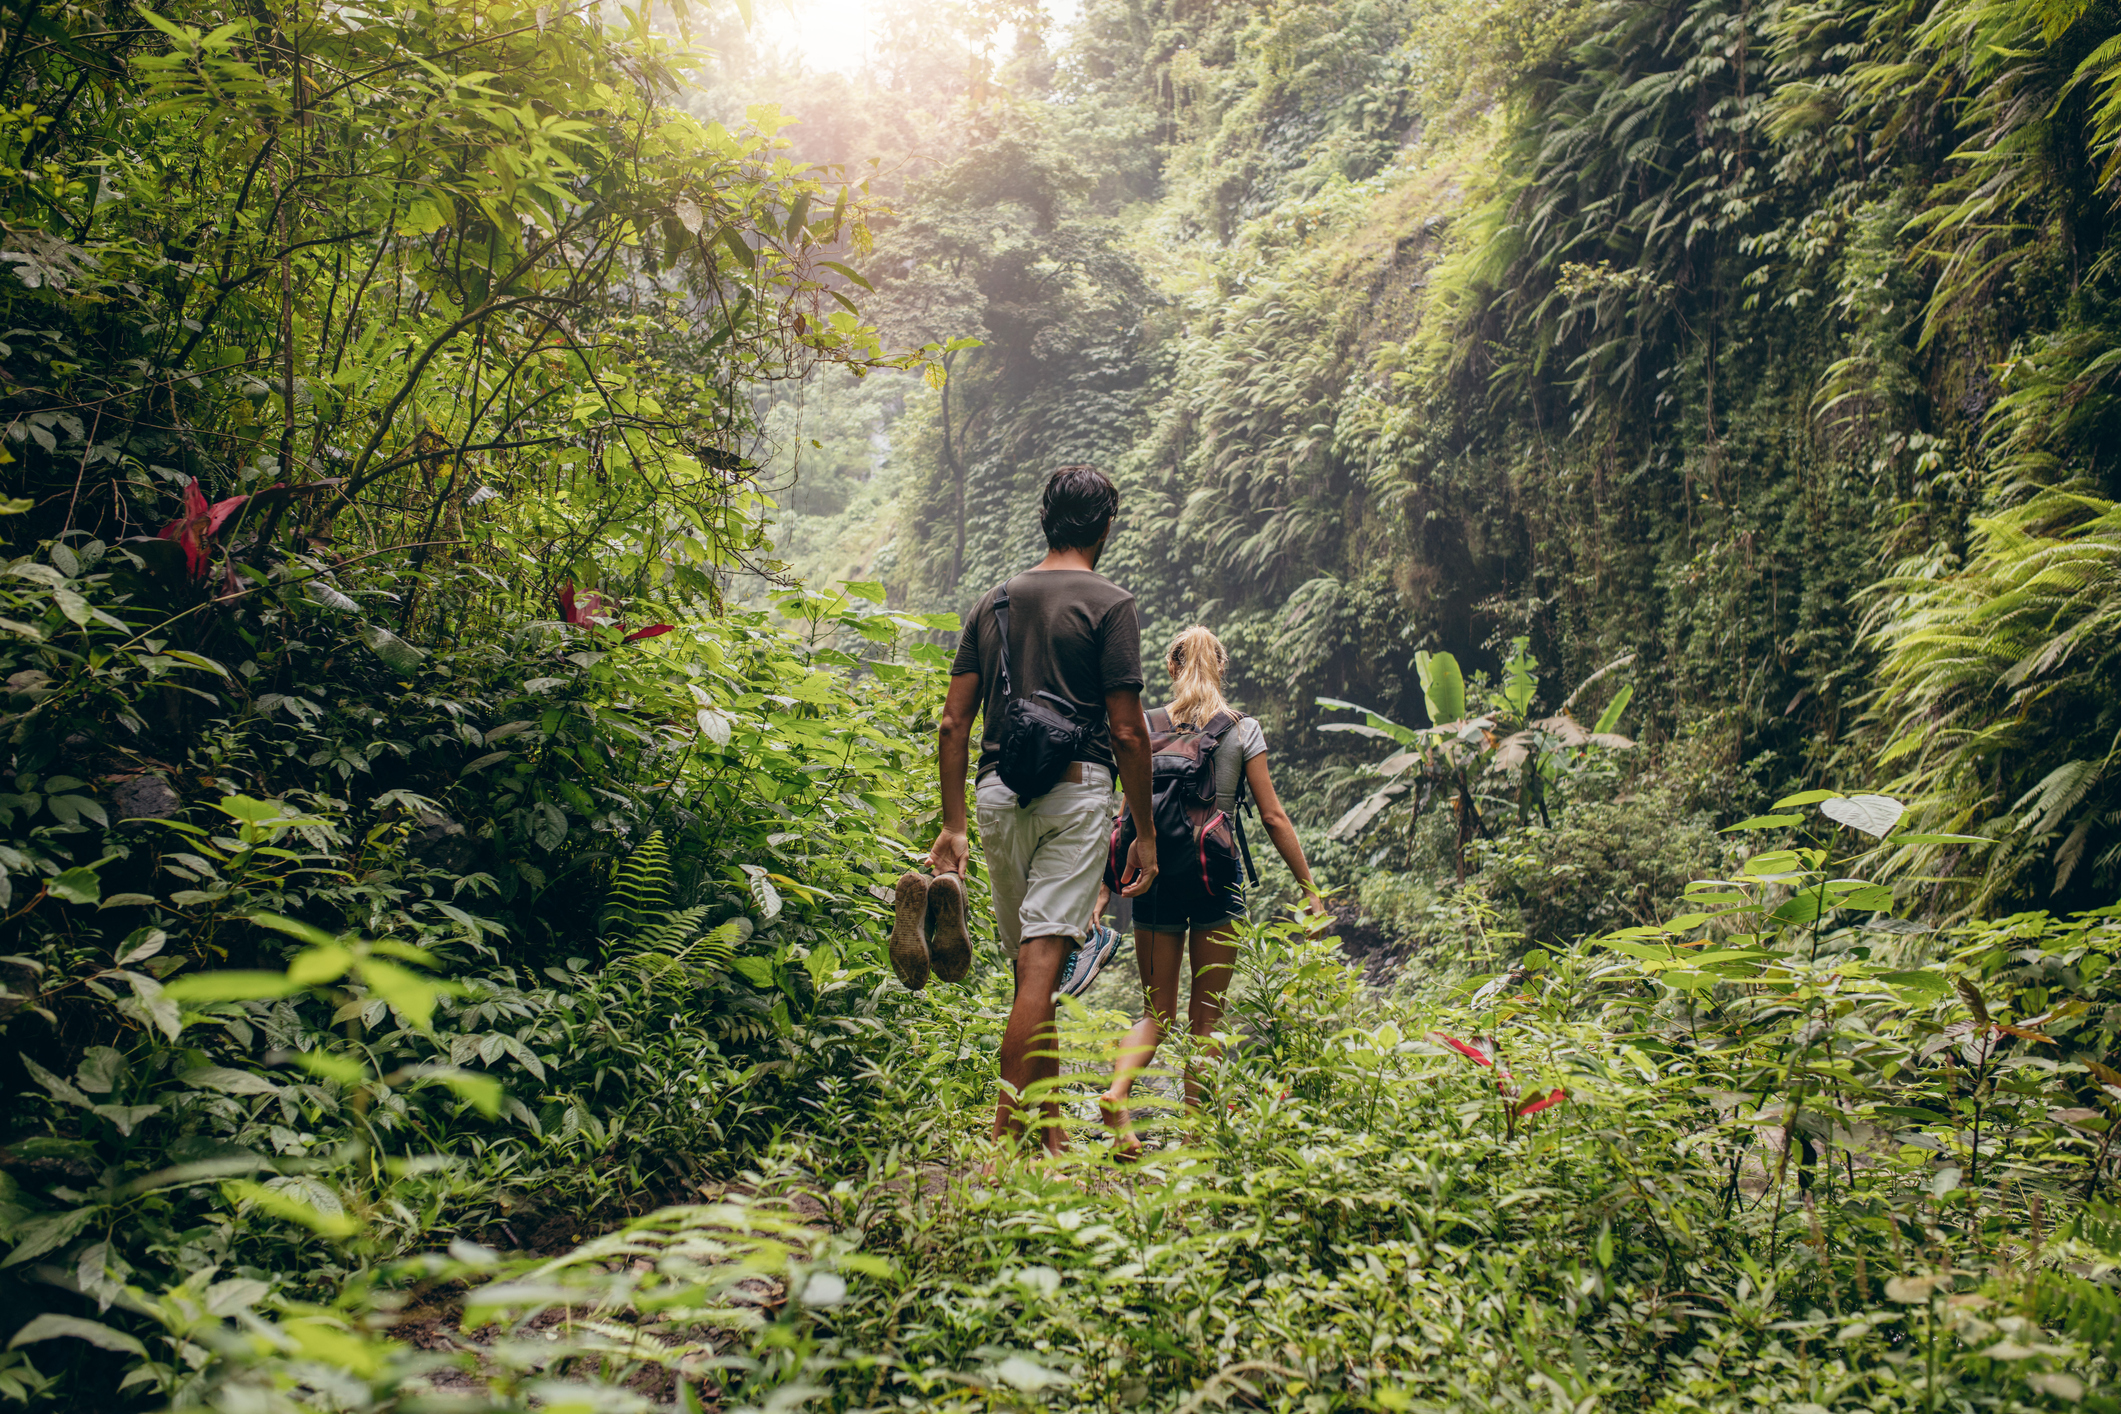 Travel vaccines give you peace of mind. Don't get sick on your trip. -